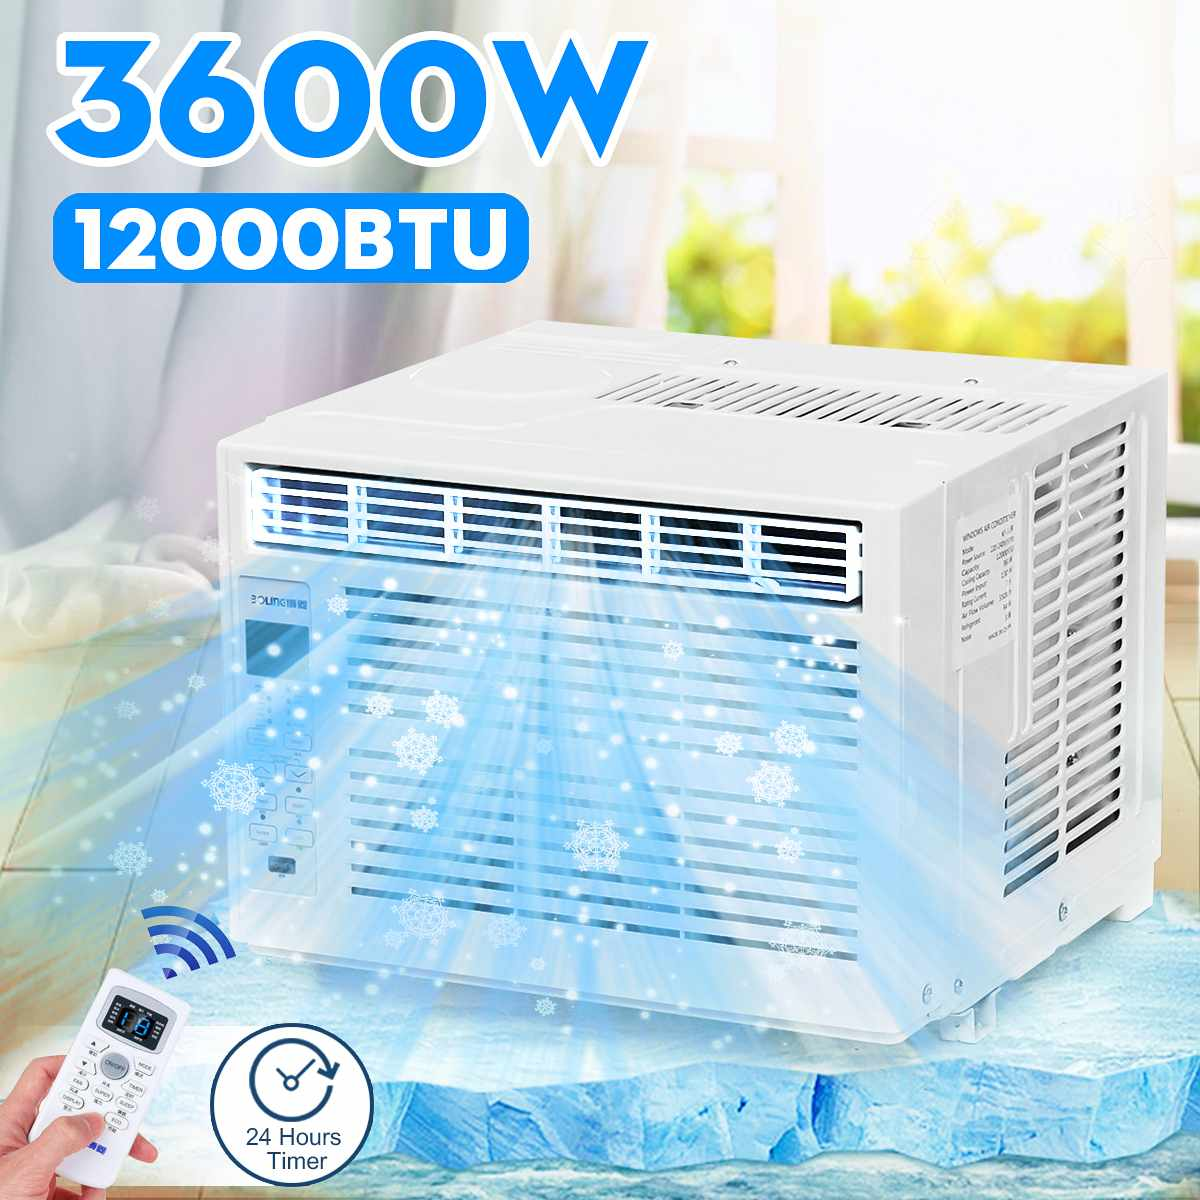 AC220-240V Desktop Air Conditioner 3600W24-hour Timer Cold Use With Remote Control LED Control Panel 12000BTU Pet Air Conditione